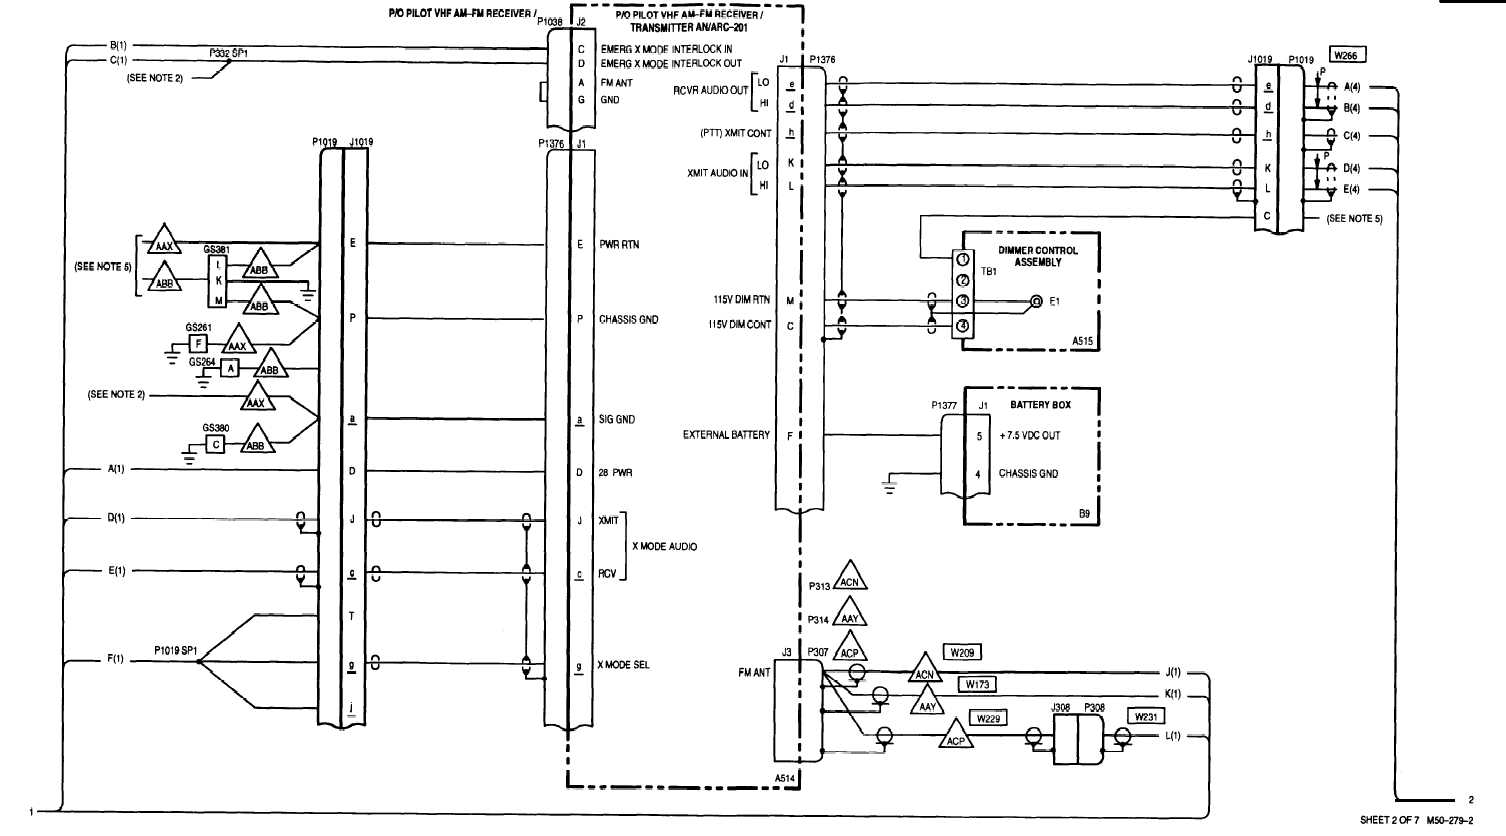 fuse box diagram together with chassis electrical wiring diagrams